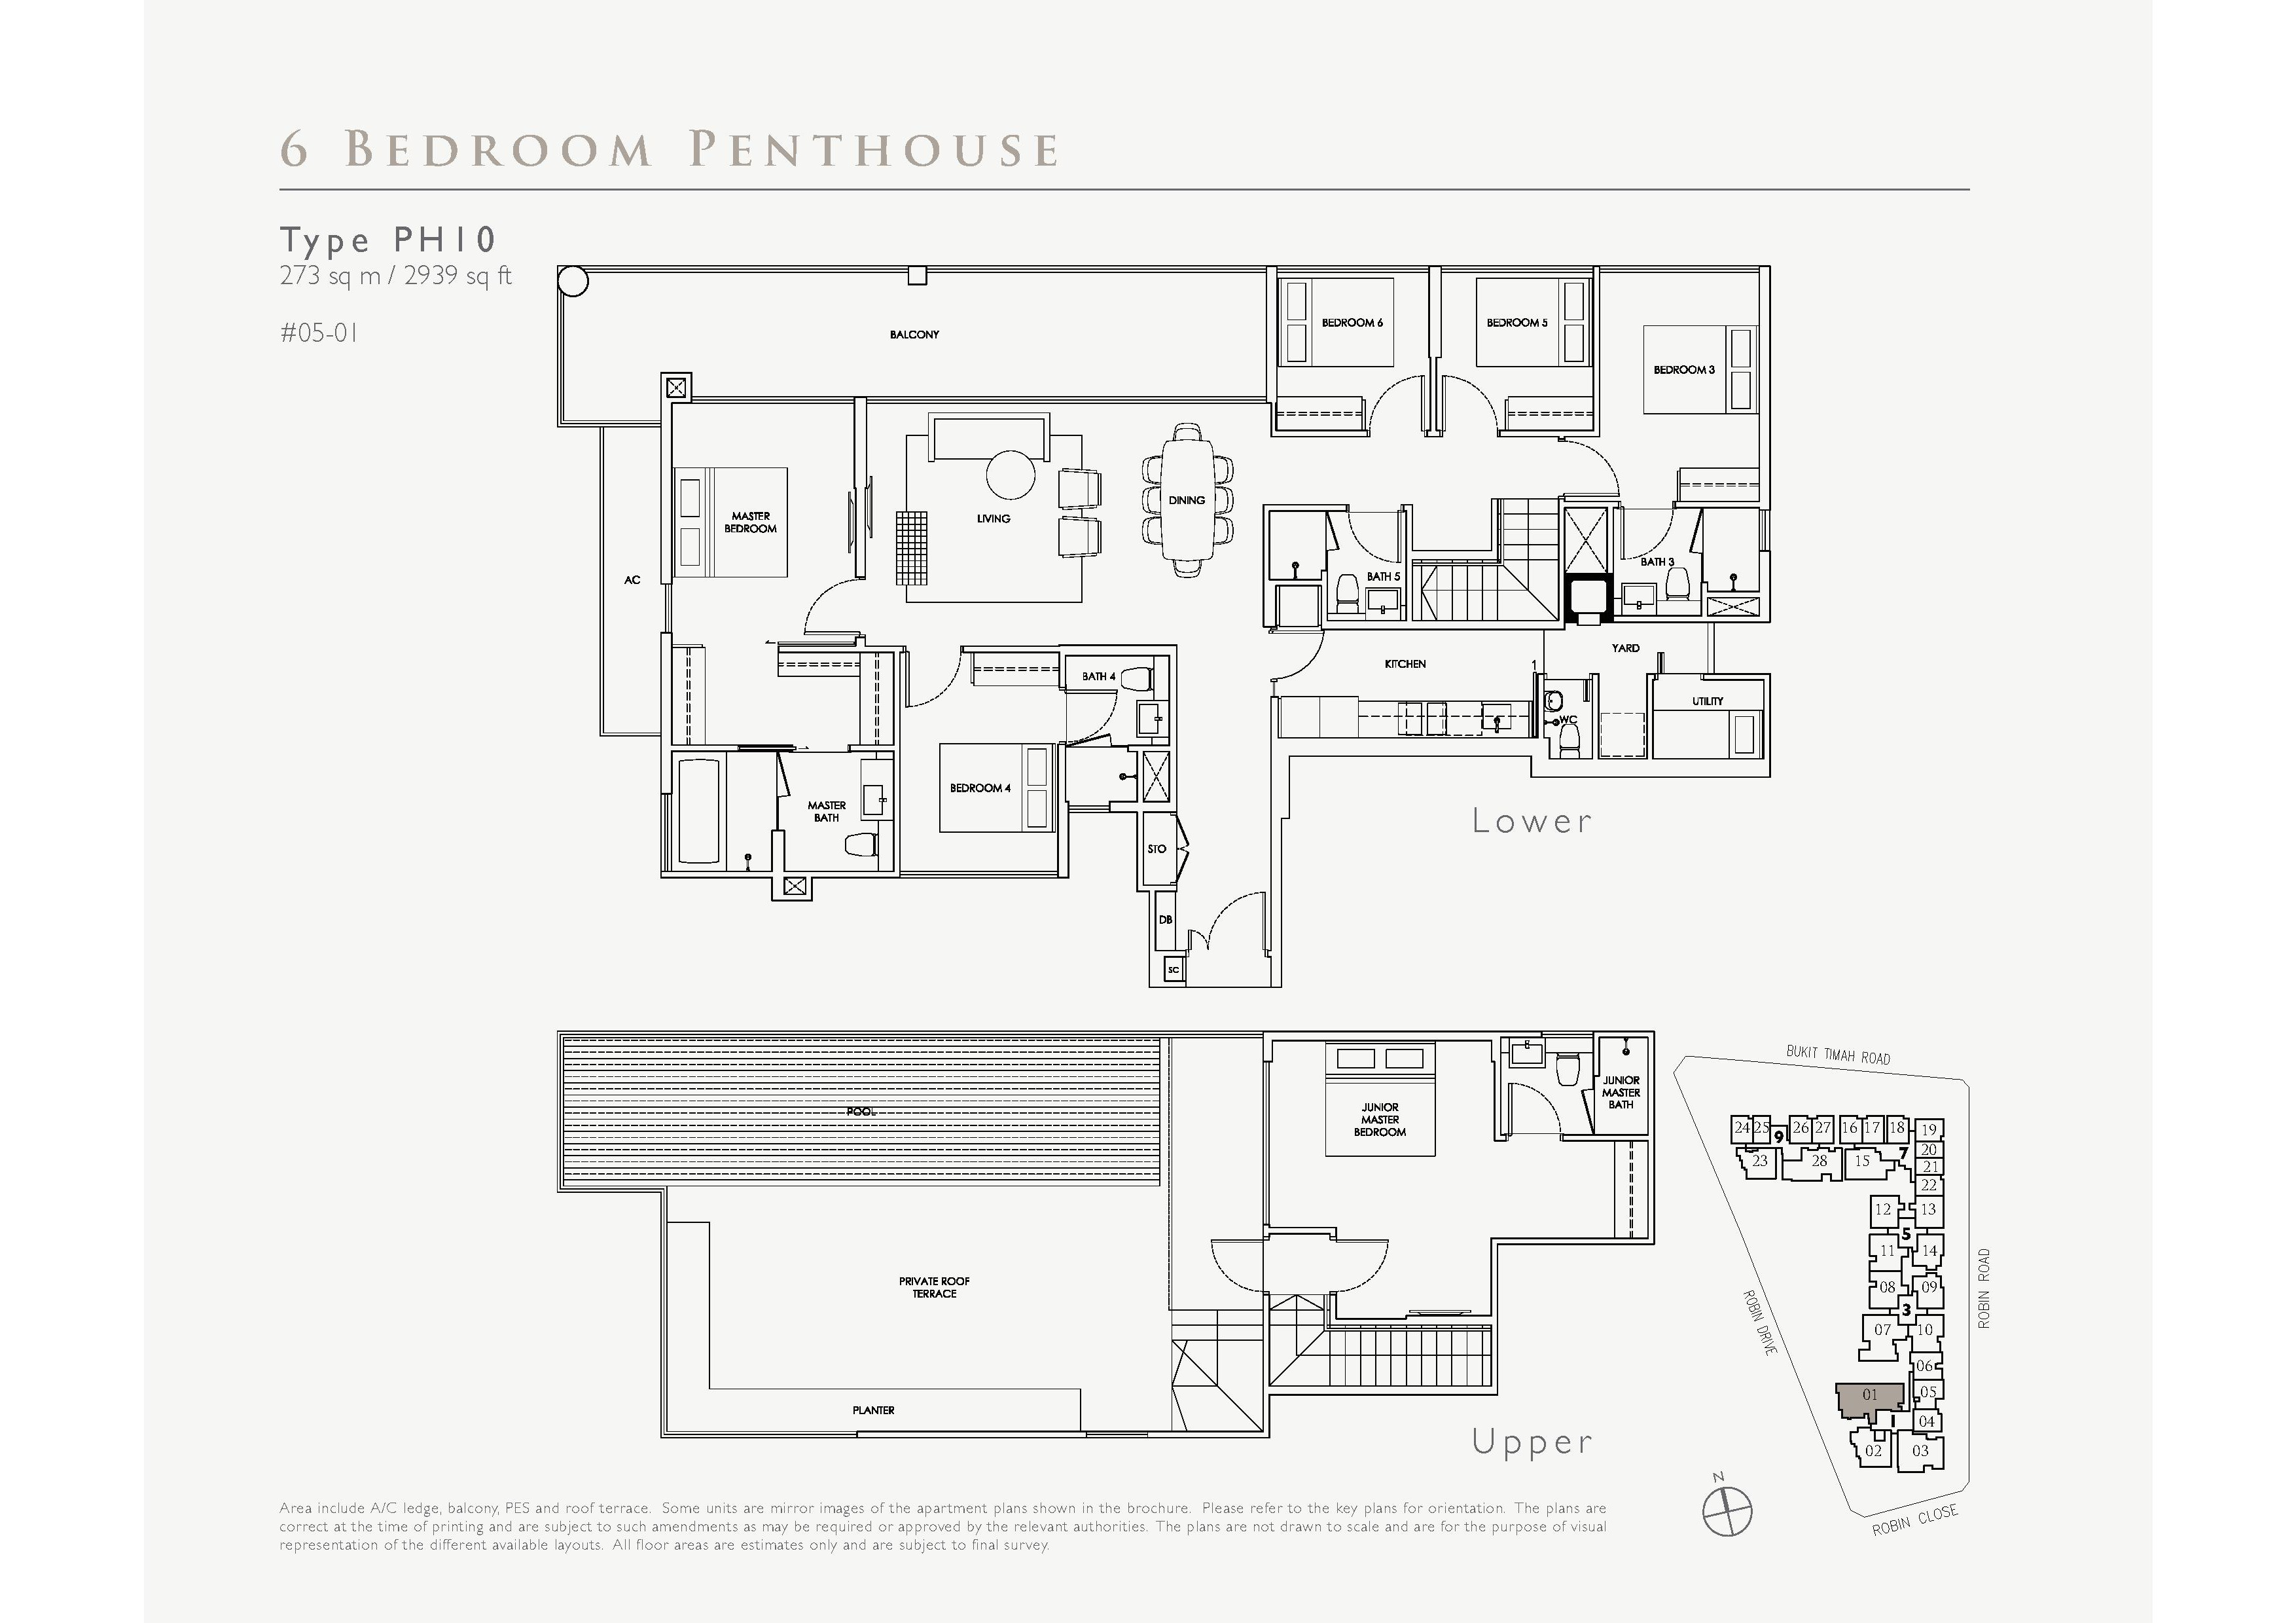 Robin Residences 6 Bedroom Penthouse Floor Plans Type PH10